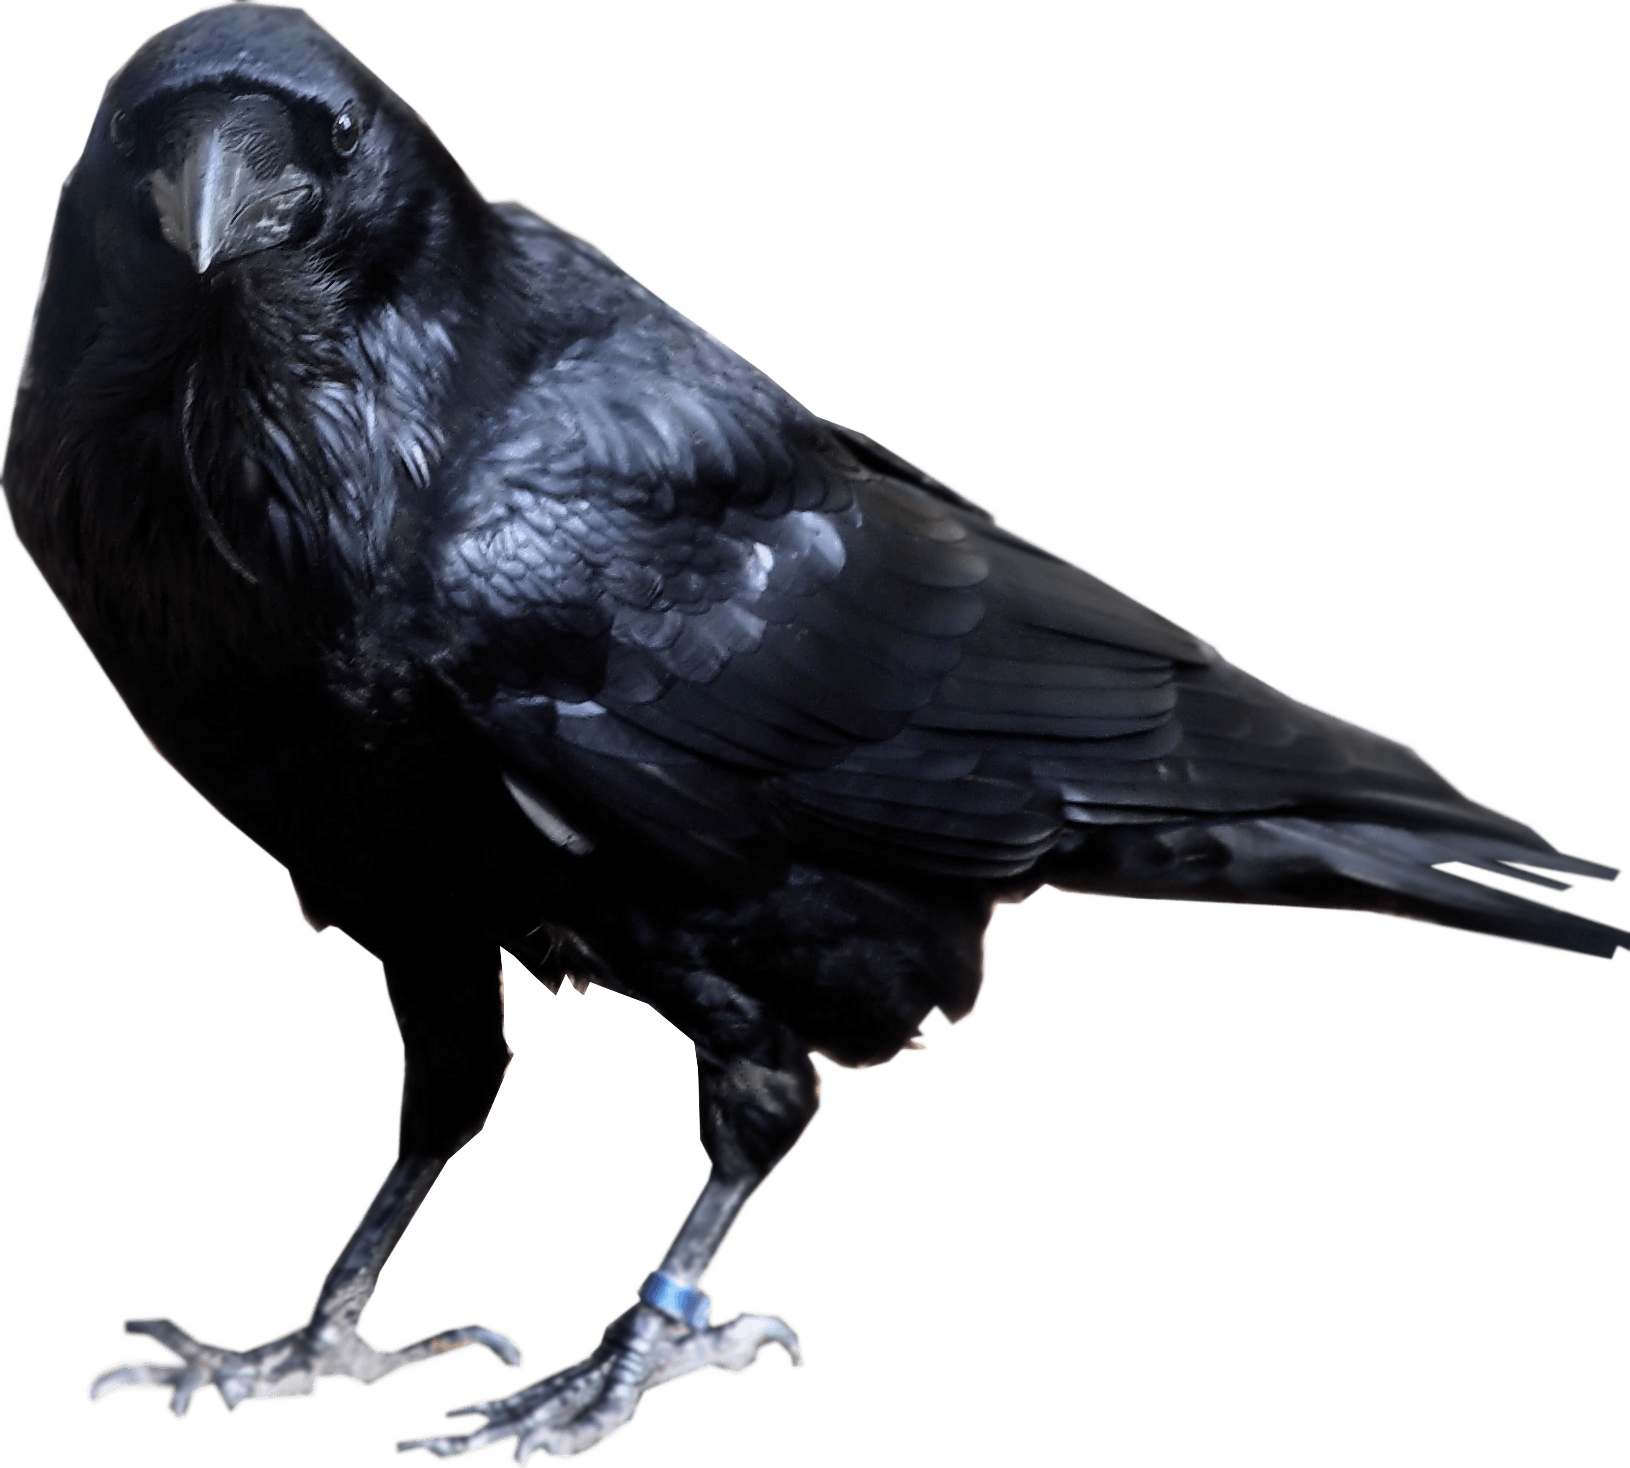 Crow looking into camera PNG Image